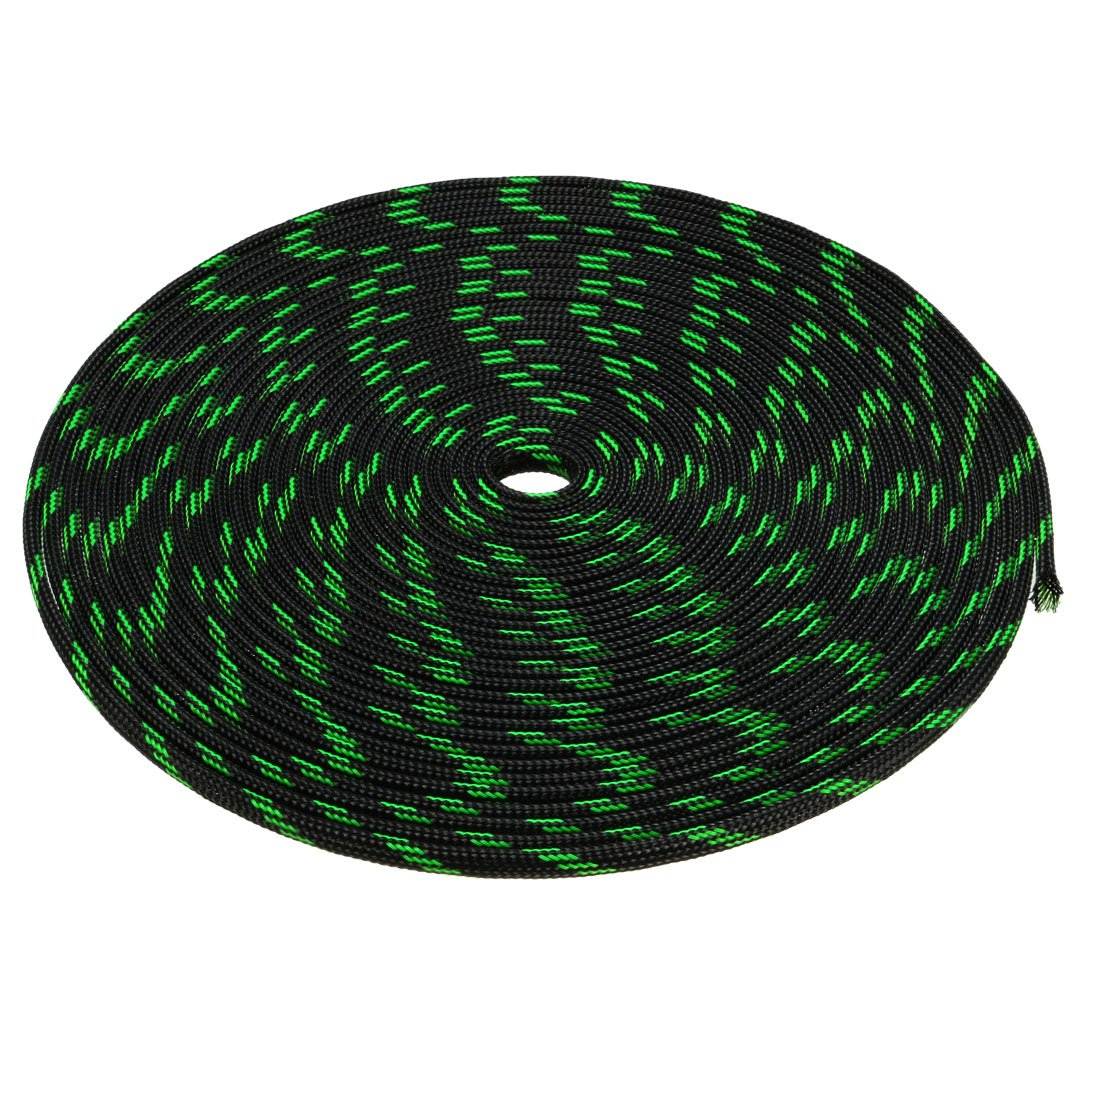 uxcell PET Braided Sleeving 32.8 Feet 10m Expandable Cable Wrap 4mm Diameter Wire Sheath Black,Green